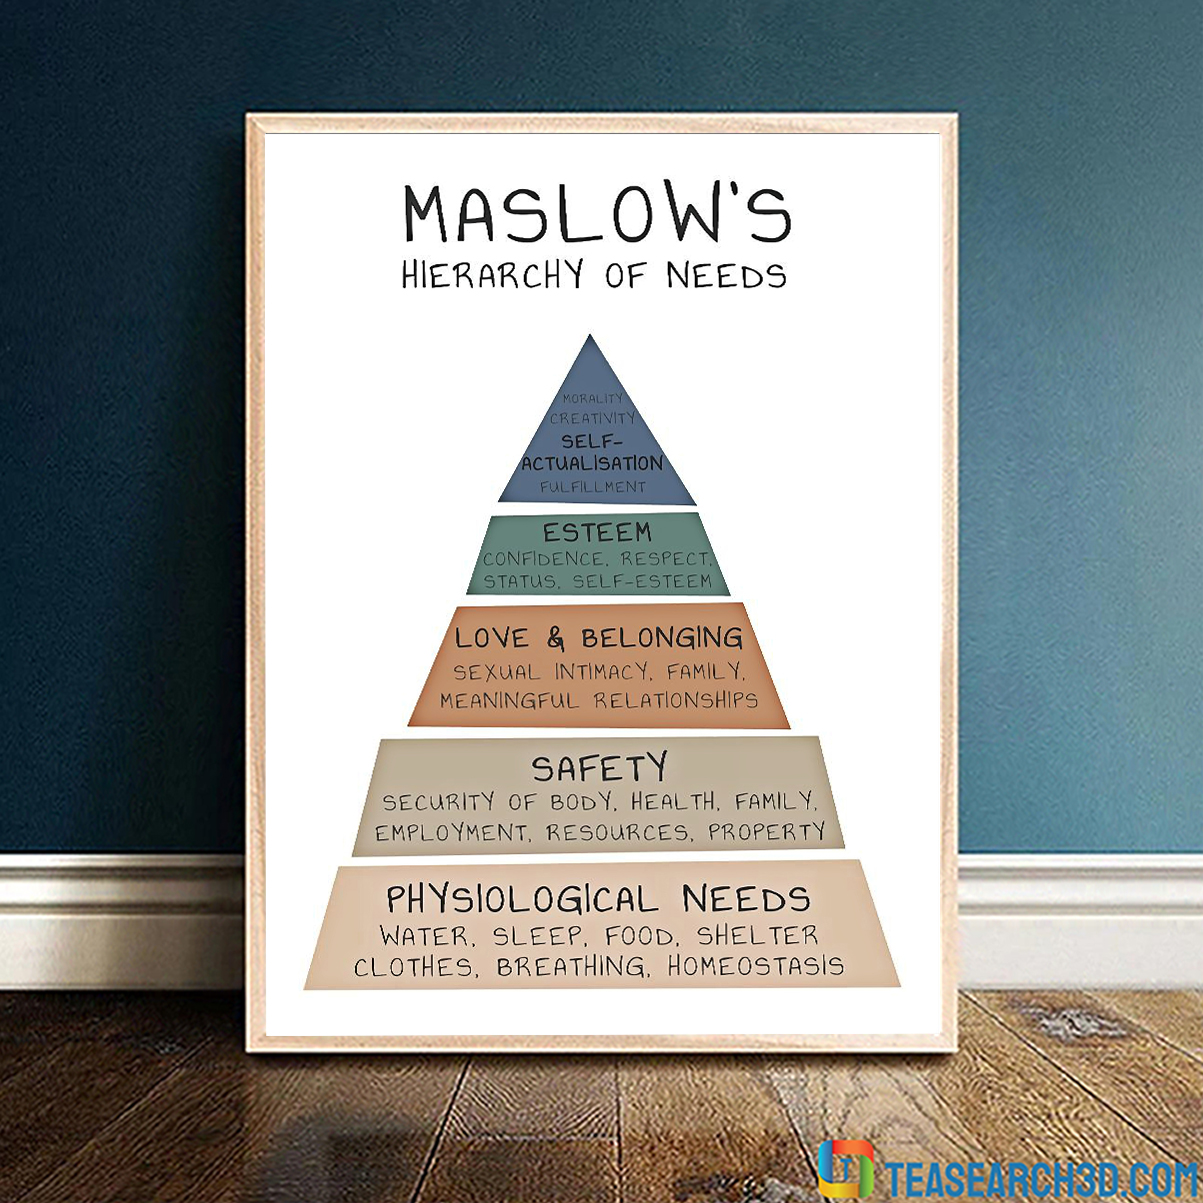 Social worker maslow's hierarchy of need vertical poster A4